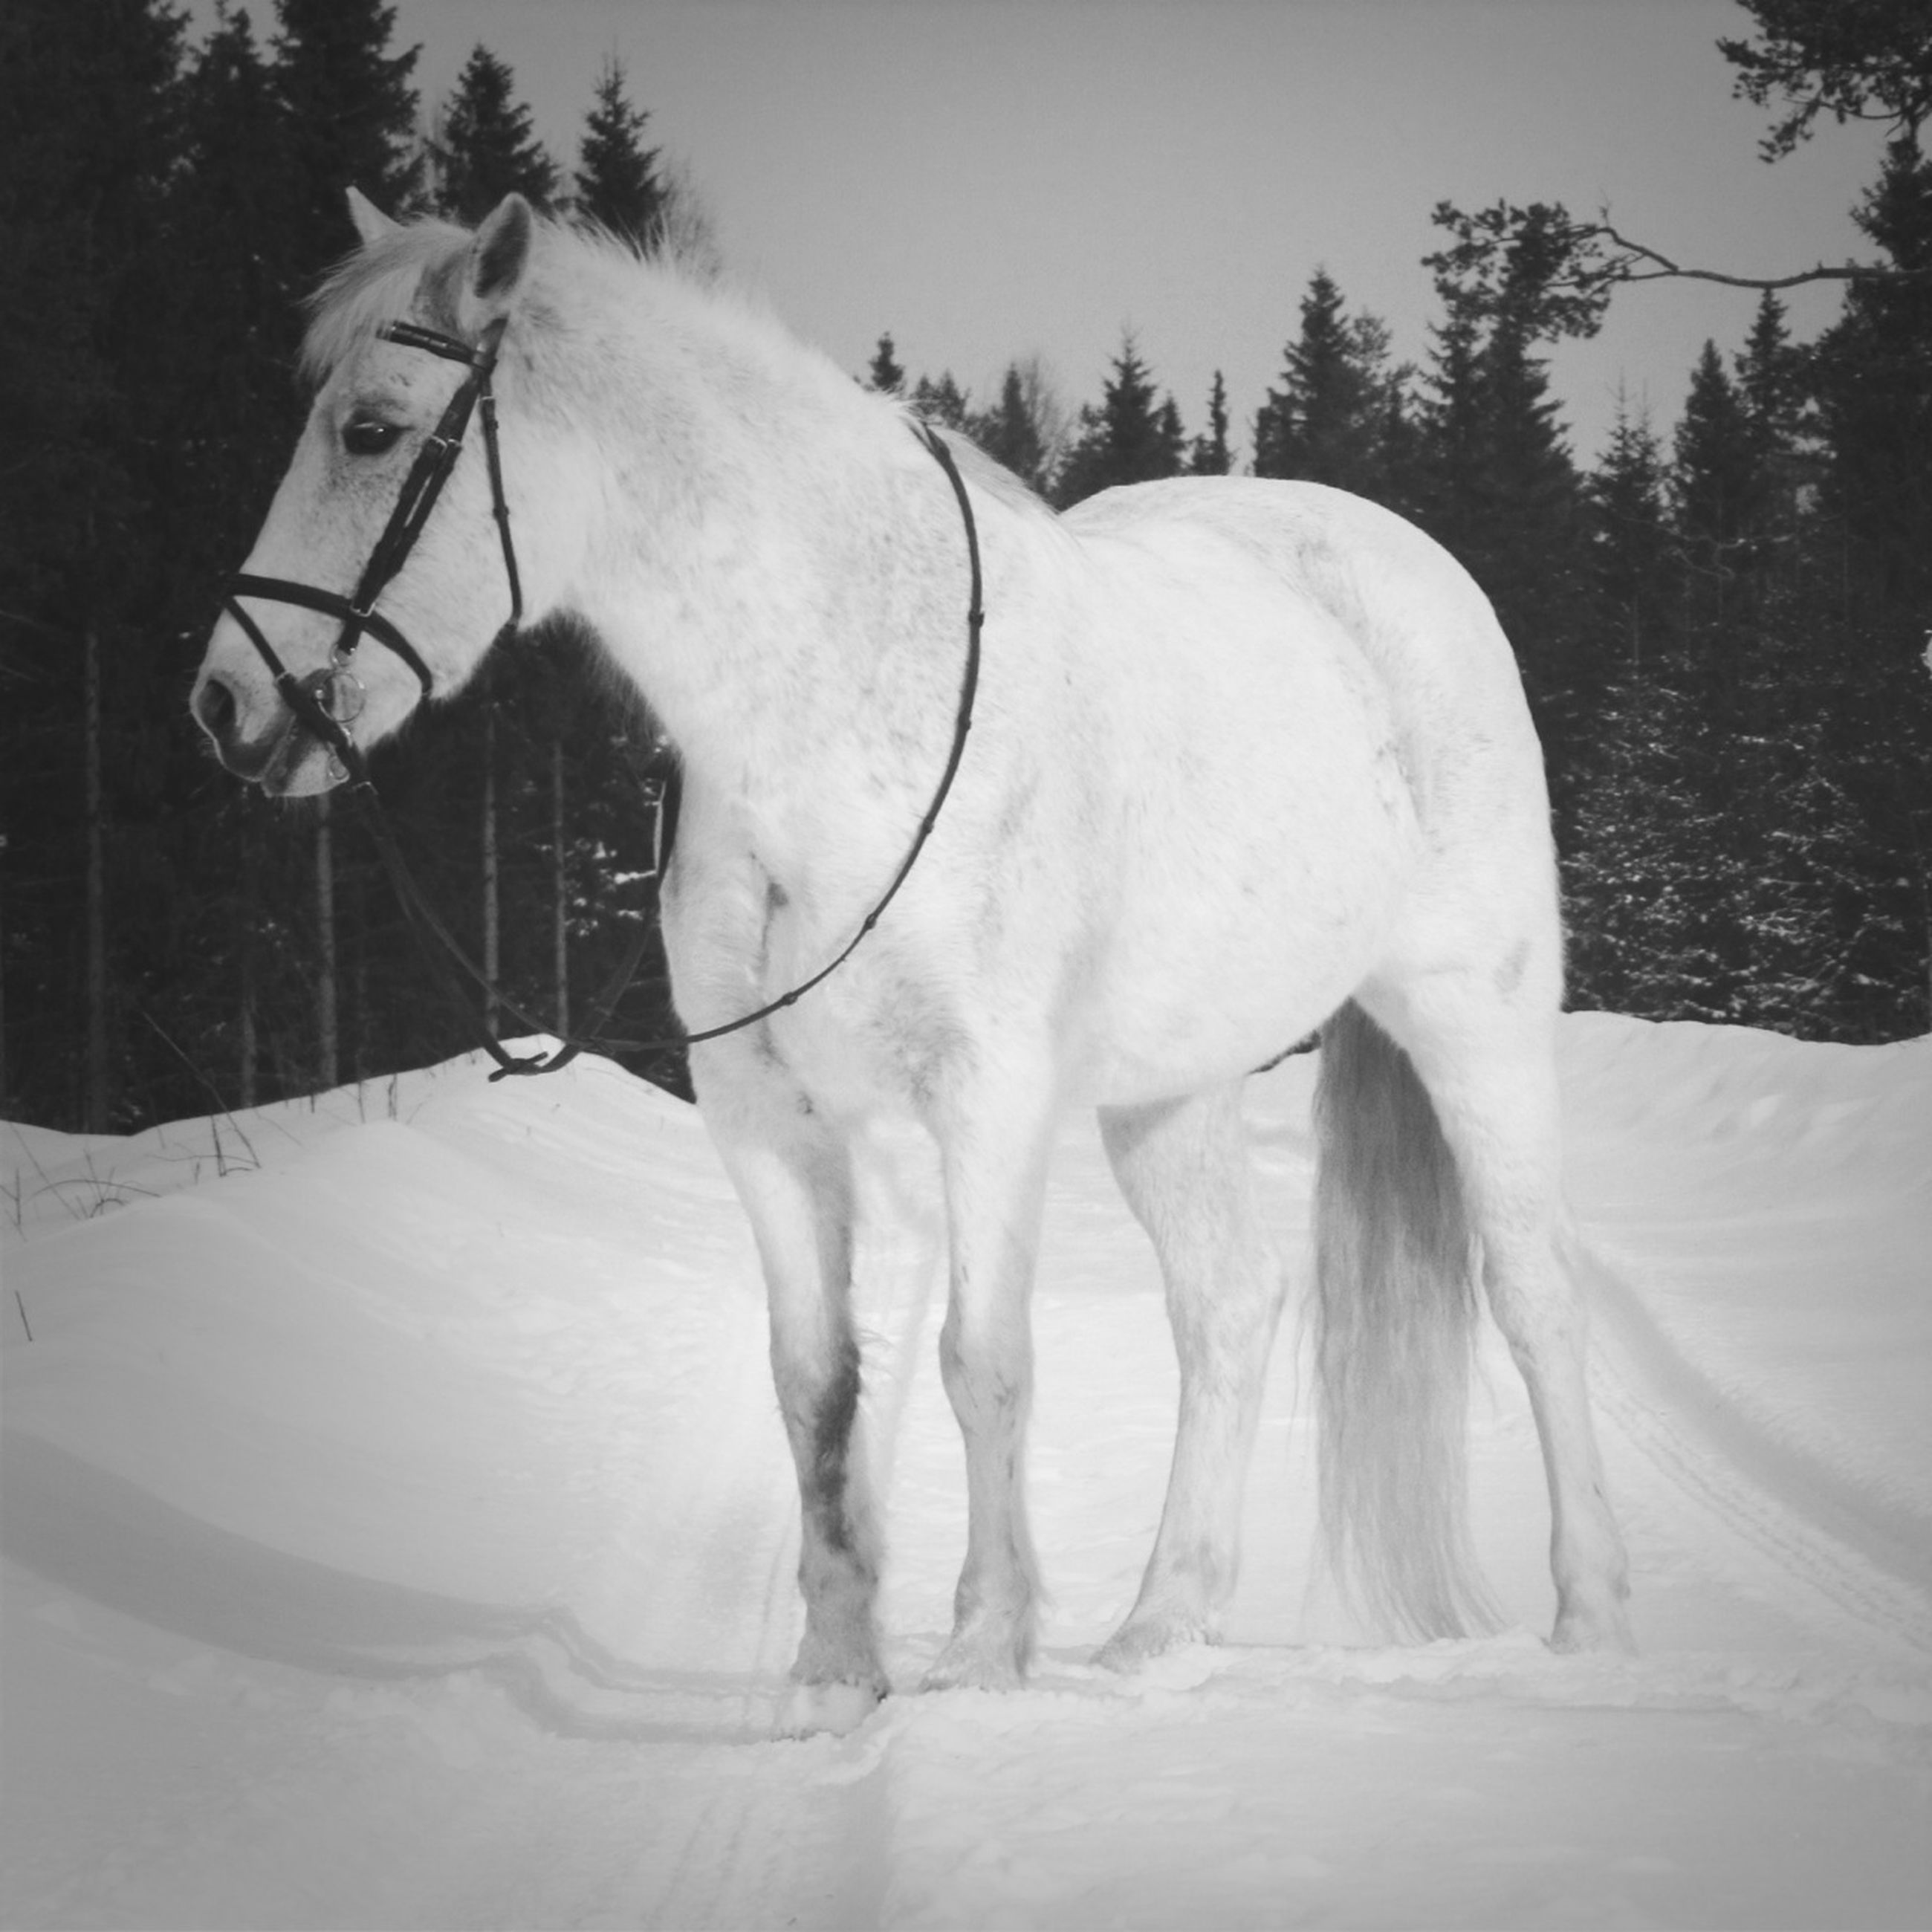 horse, animal themes, domestic animals, white color, livestock, mammal, herbivorous, working animal, field, one animal, standing, tree, white, nature, sunlight, day, two animals, full length, outdoors, side view